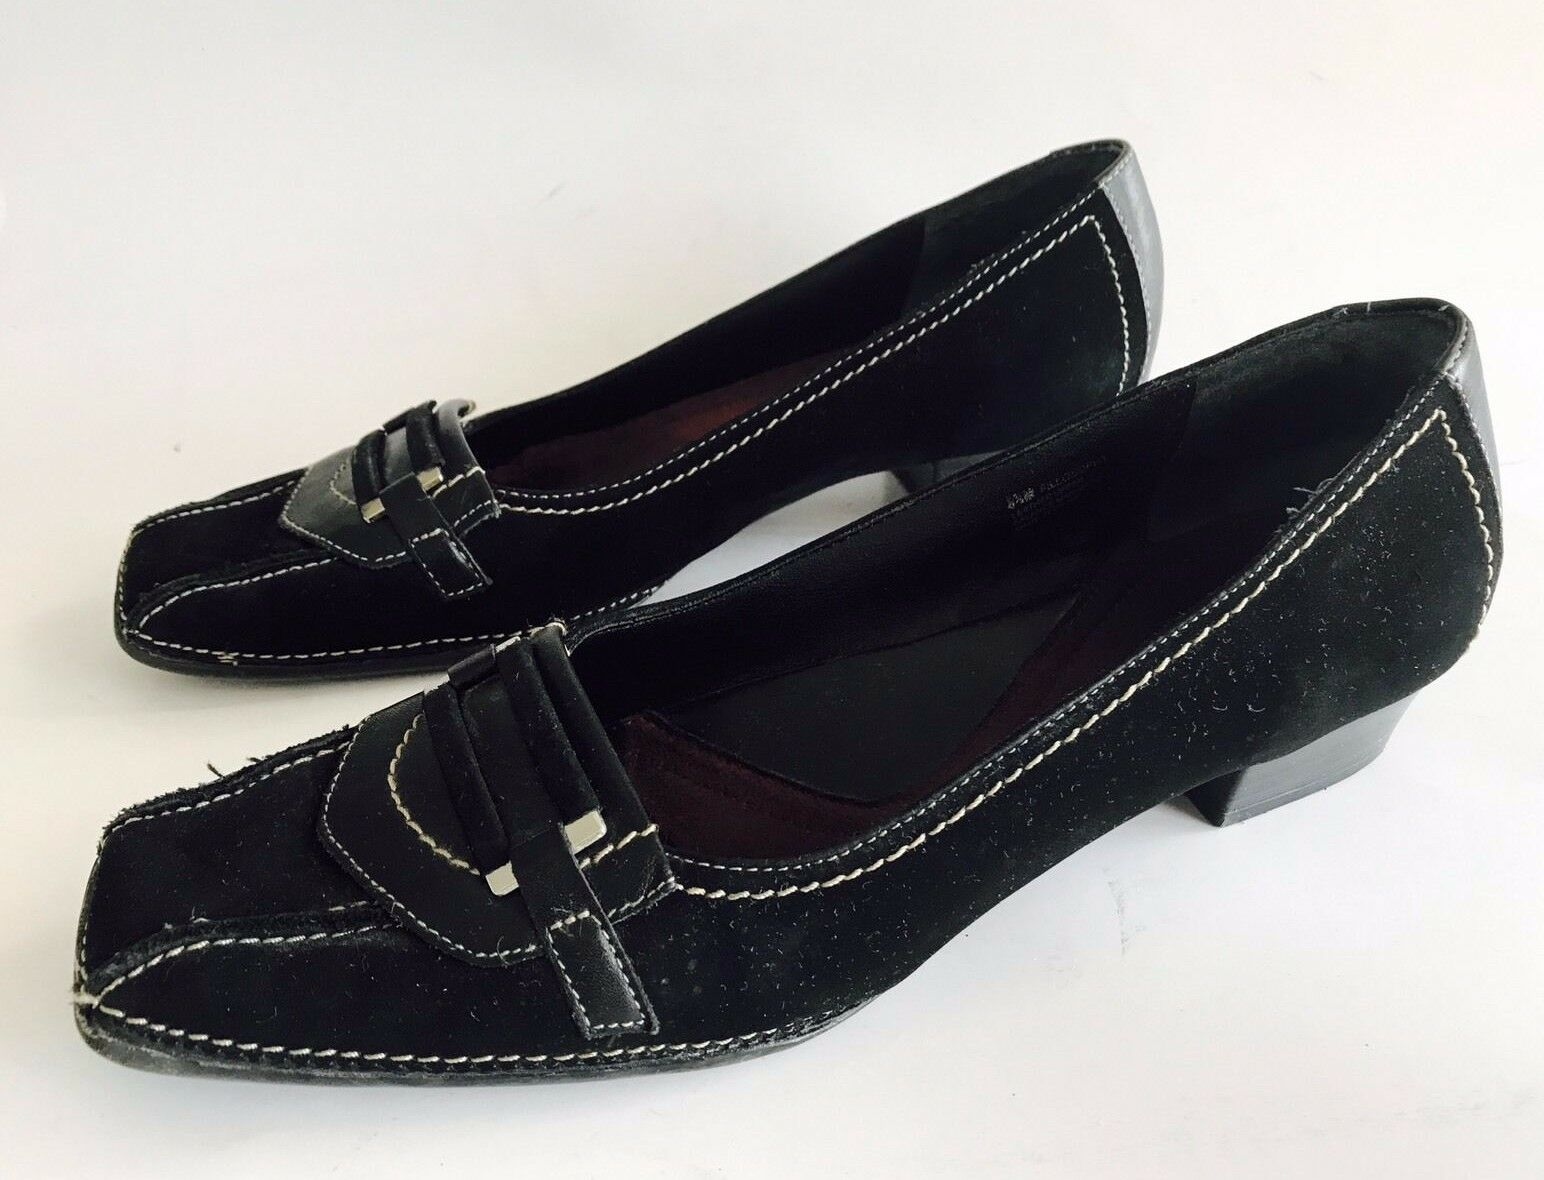 Whats What By Aerosoles Black Leather Low Heels Pumps shoes Women's Size 8.5